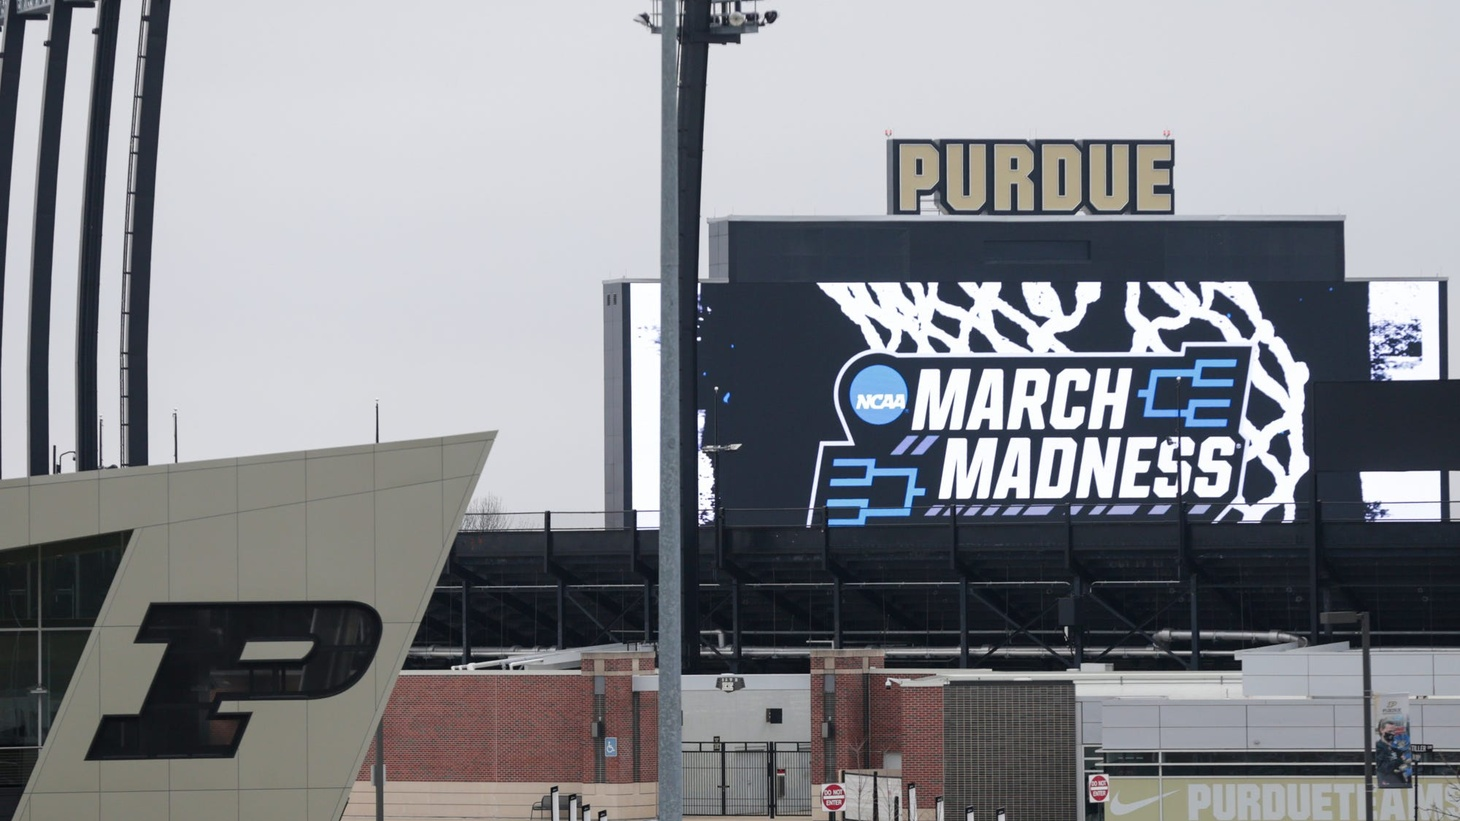 The NCAA March Madness logo is displayed on the Ross-Ade Stadium video board ahead of the 2021 NCAA Men's Basketball Tournament games at Mackey Arena, Tuesday, March 16, 2021 in West Lafayette.